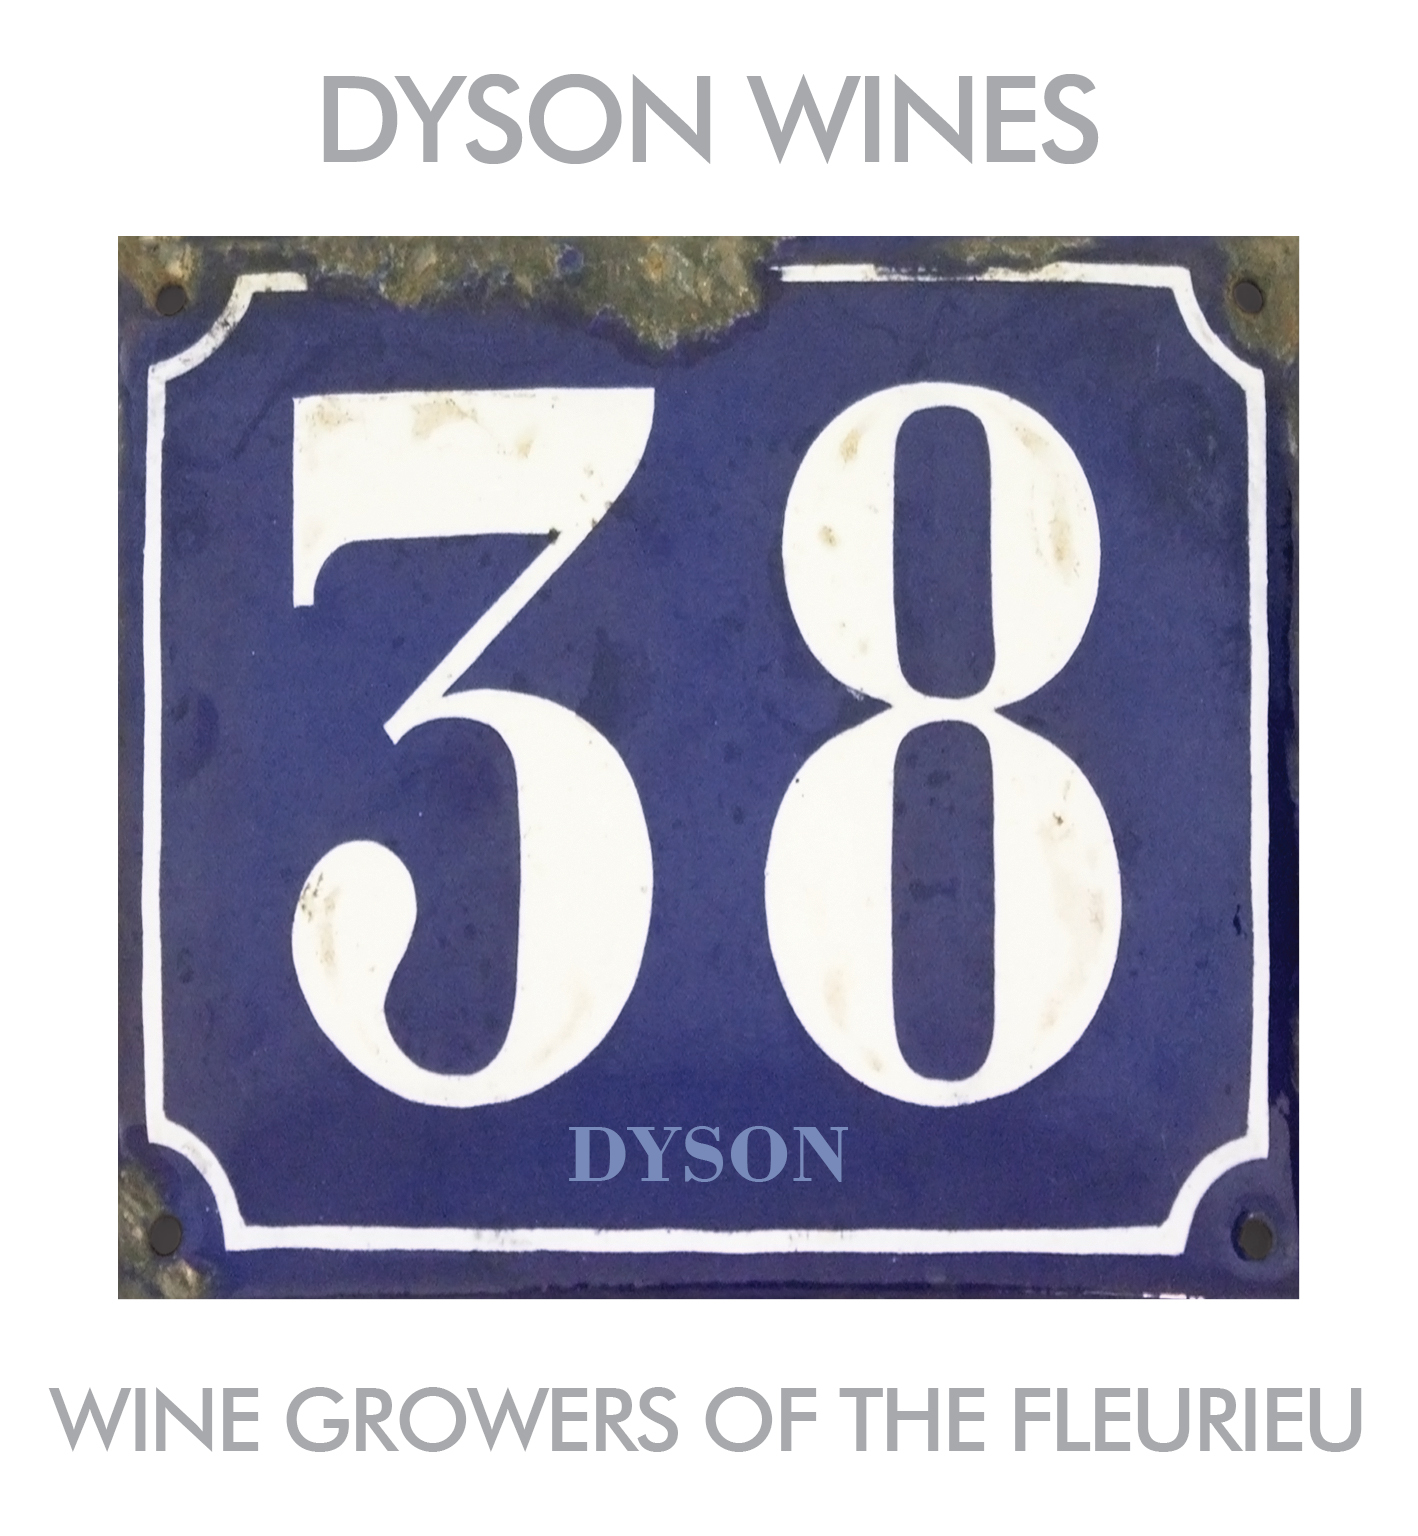 Dyson Wines - Attractions Perth